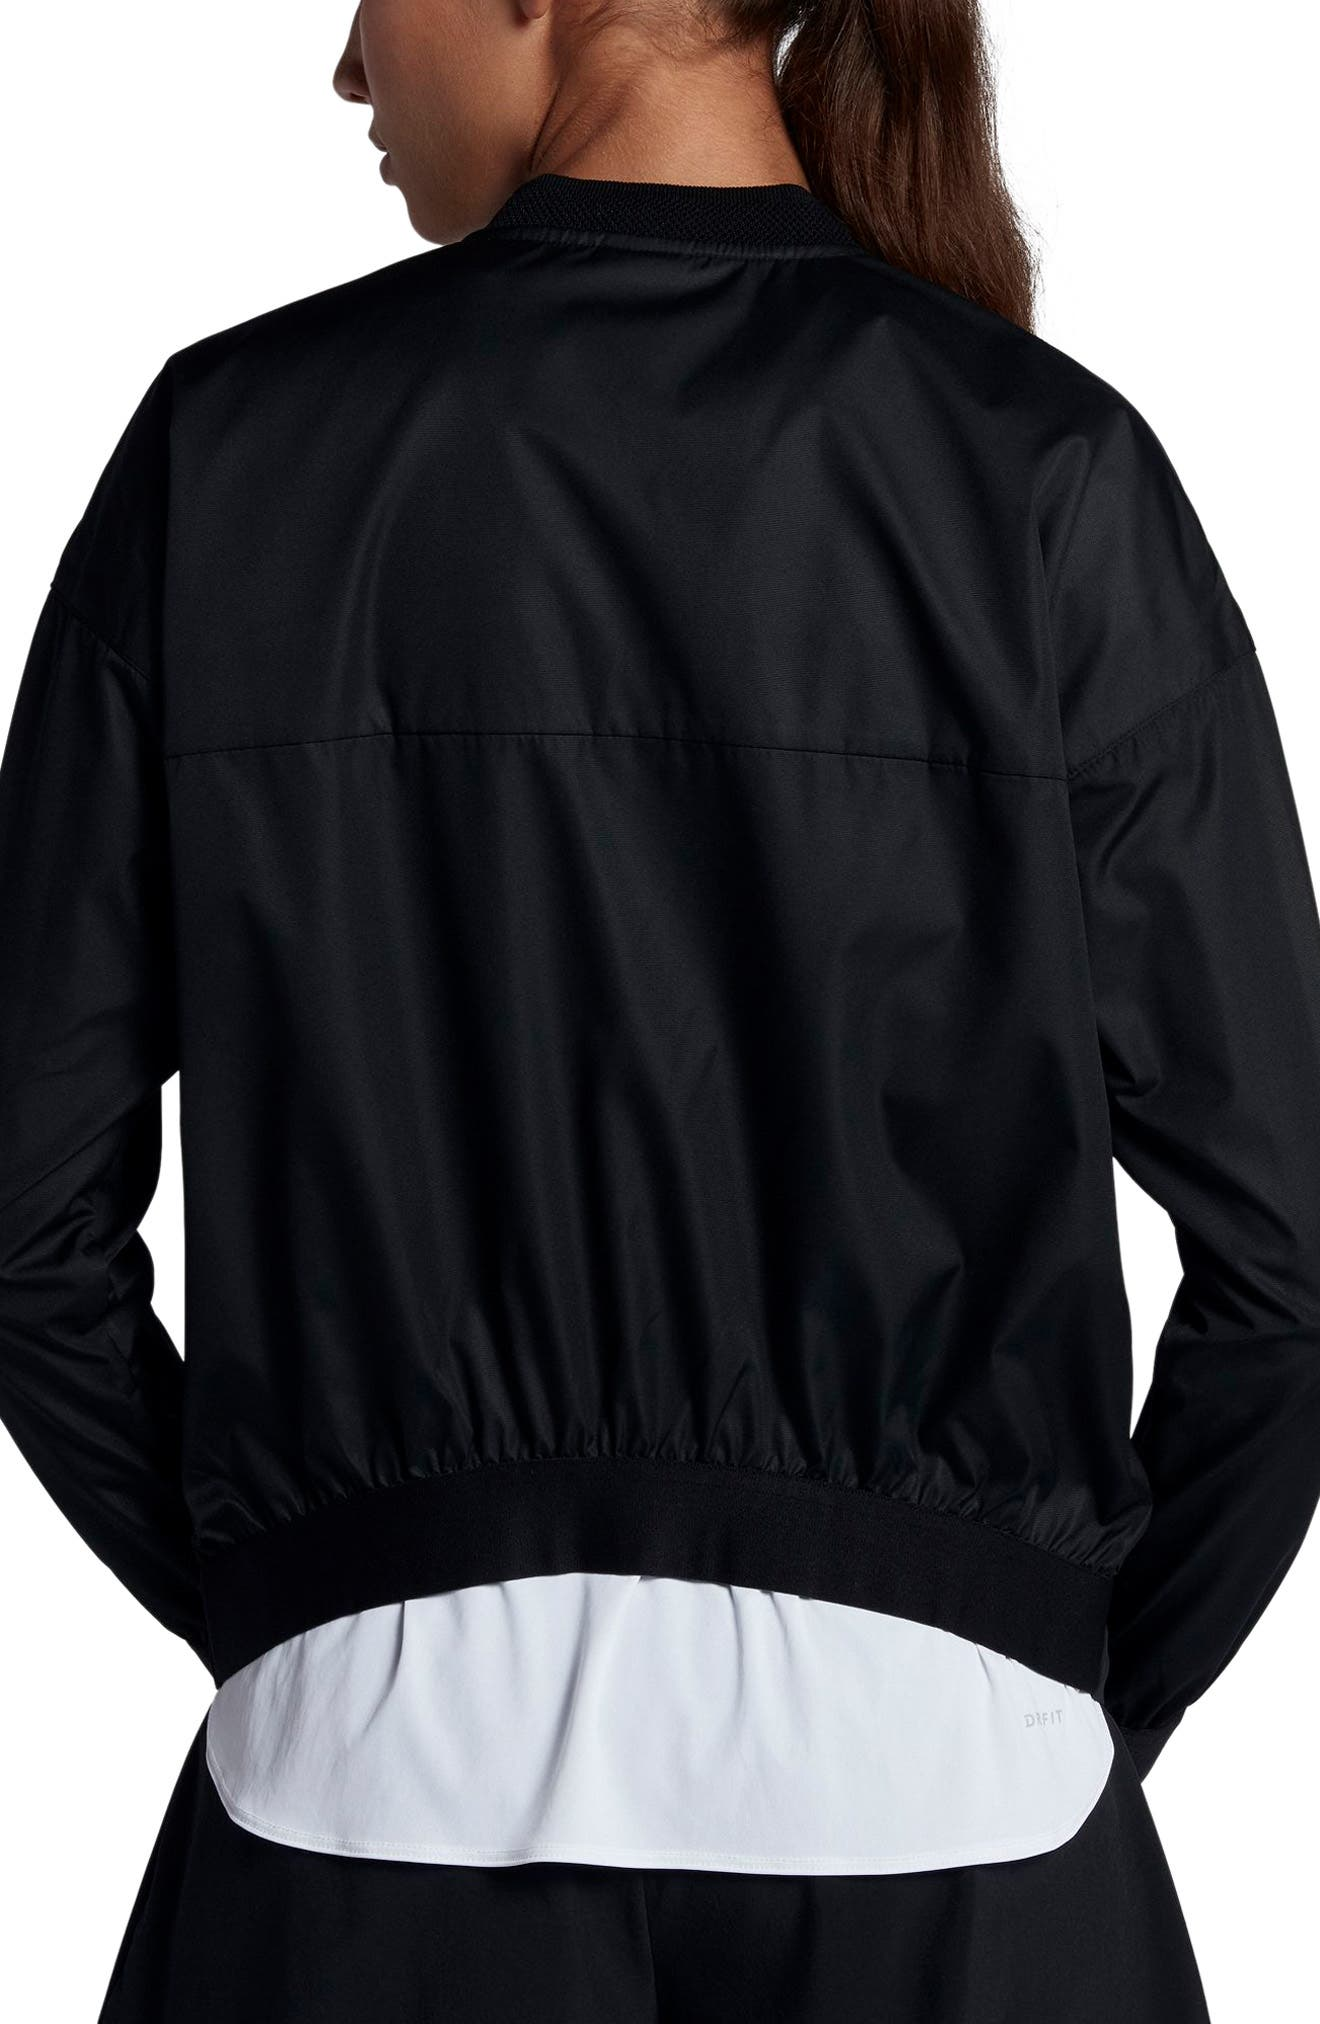 Court Water-Resistant Bomber Jacket,                             Alternate thumbnail 2, color,                             Black/ Summit White/ White